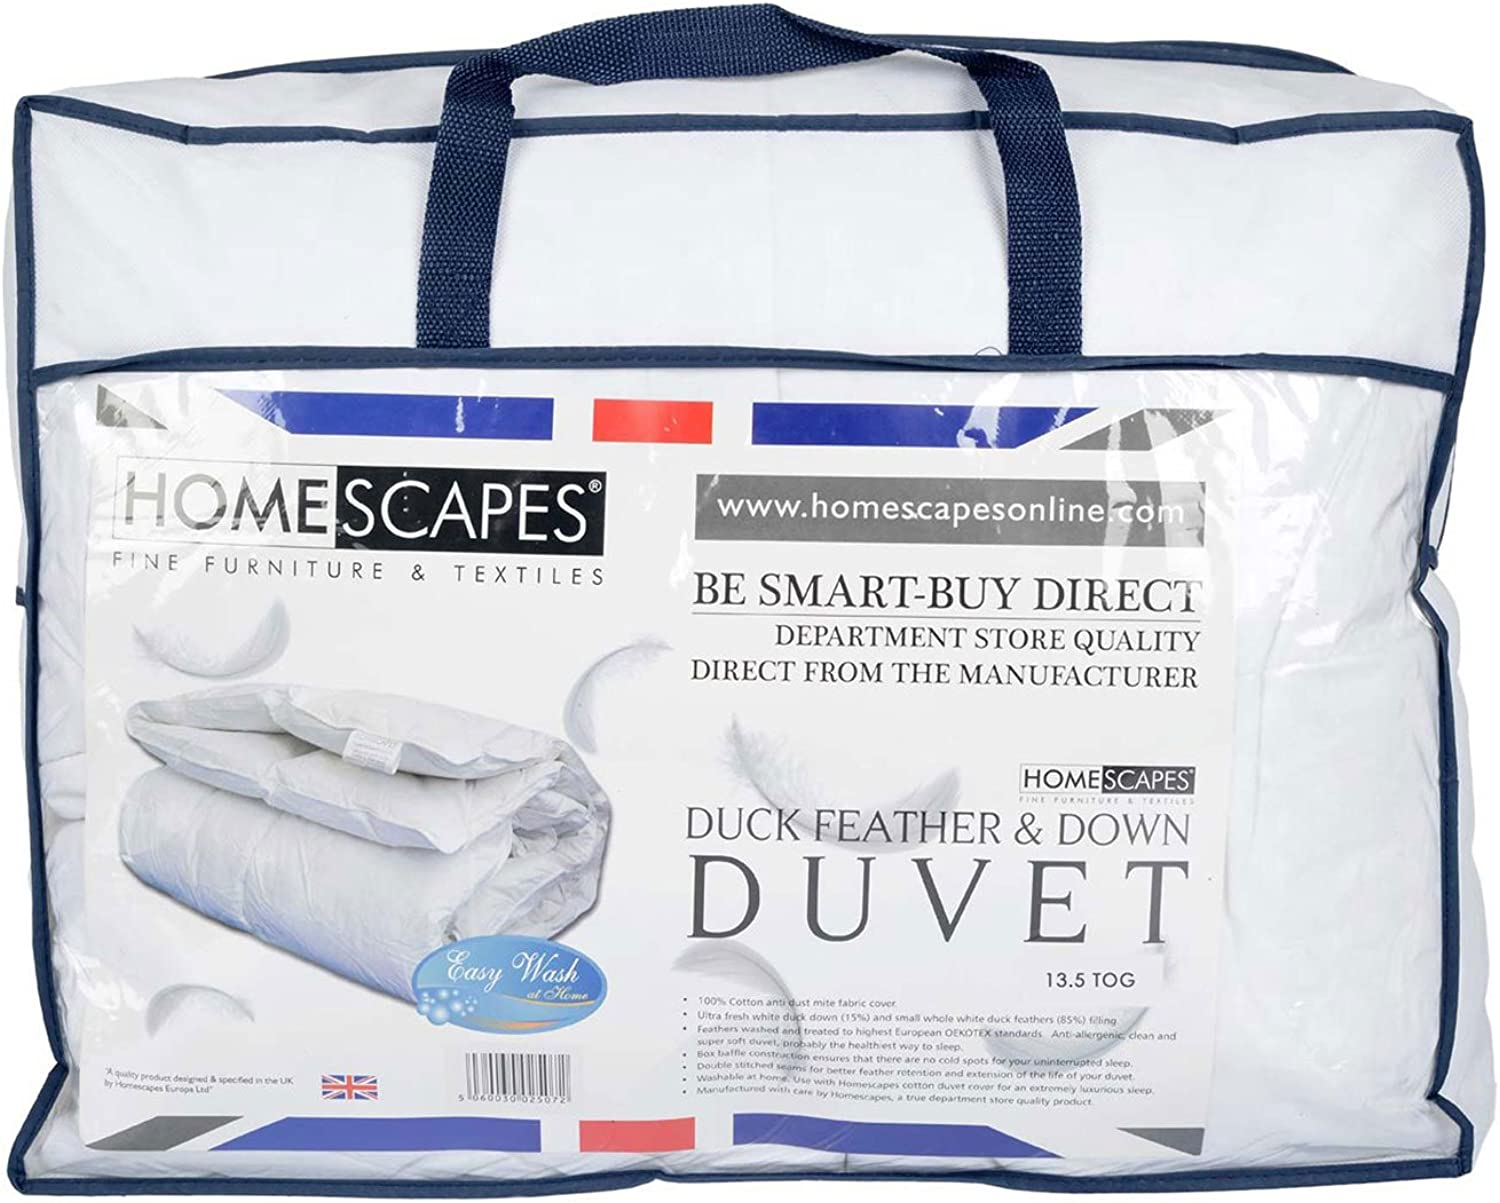 Homescapes - Luxury nouveau blanc Duck Feather & Down Duvet - 13.5 Tog - Super King - 100% Cotton Anti Dust Mite & Down Proof Cover - Anti allergen - Box Baffle Construction - Washable at Home Range